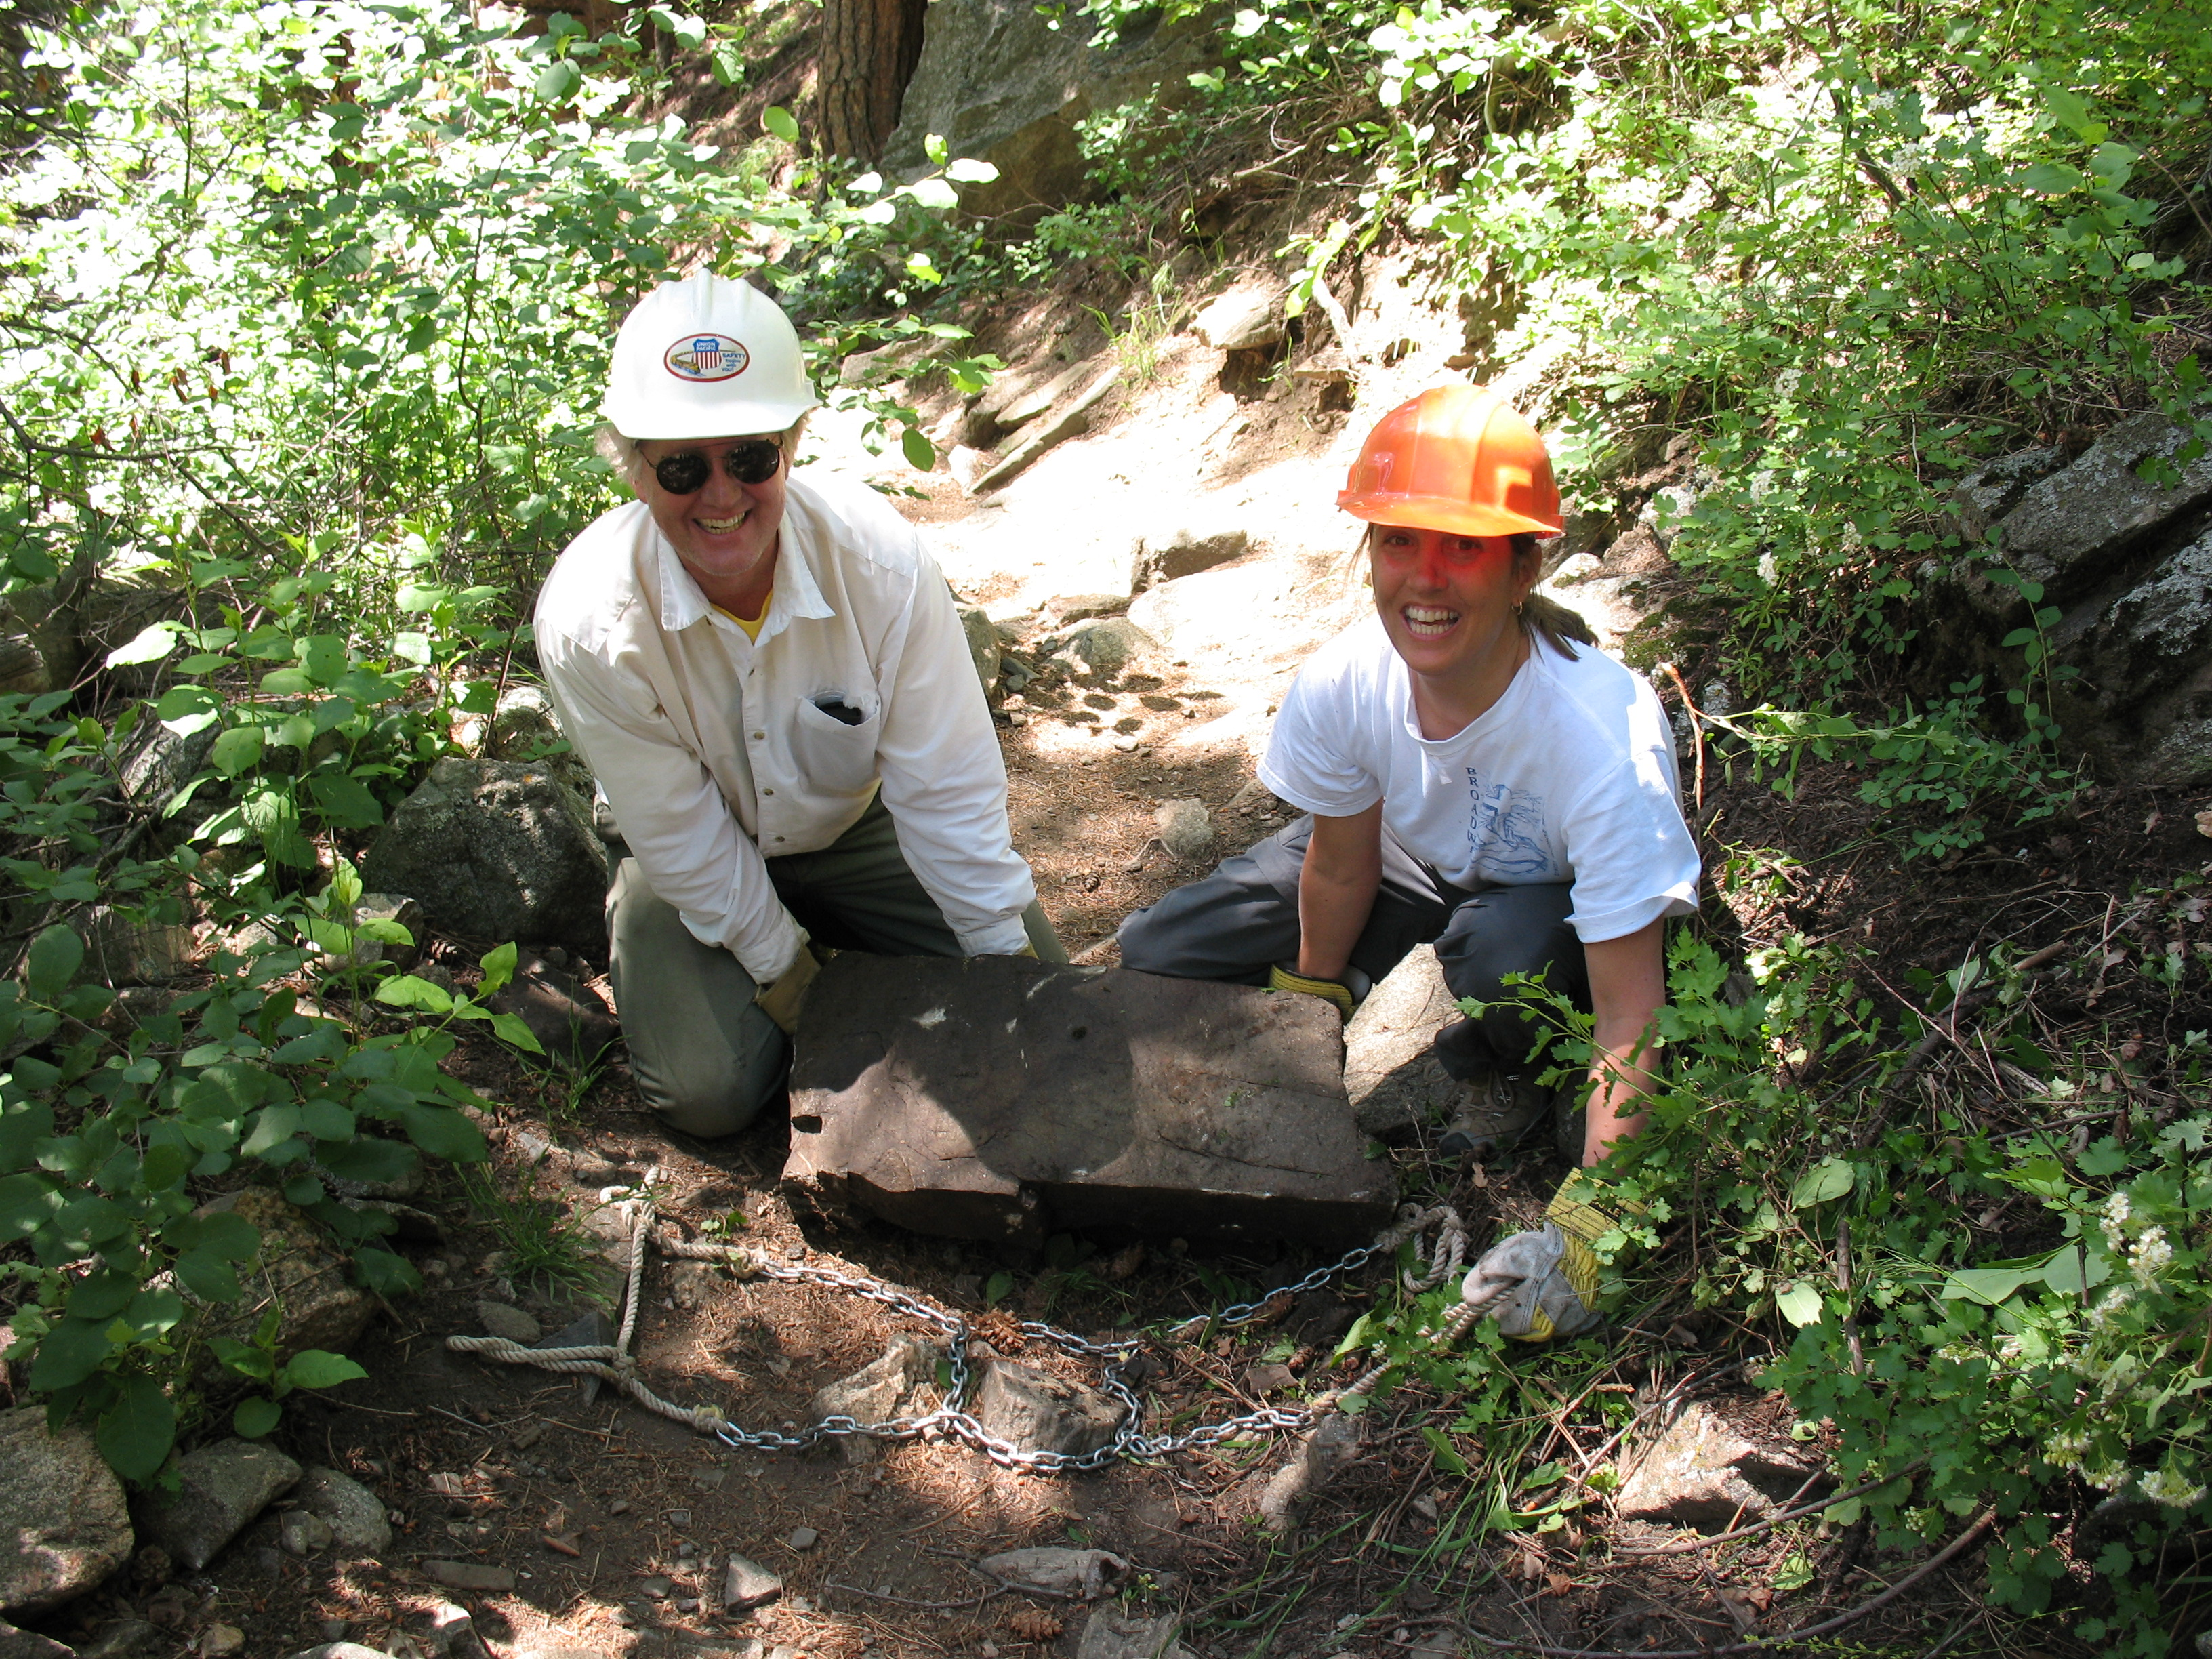 Two people placing a rock on a dirt trail next to steep green ve, smiling and looking at the camera.